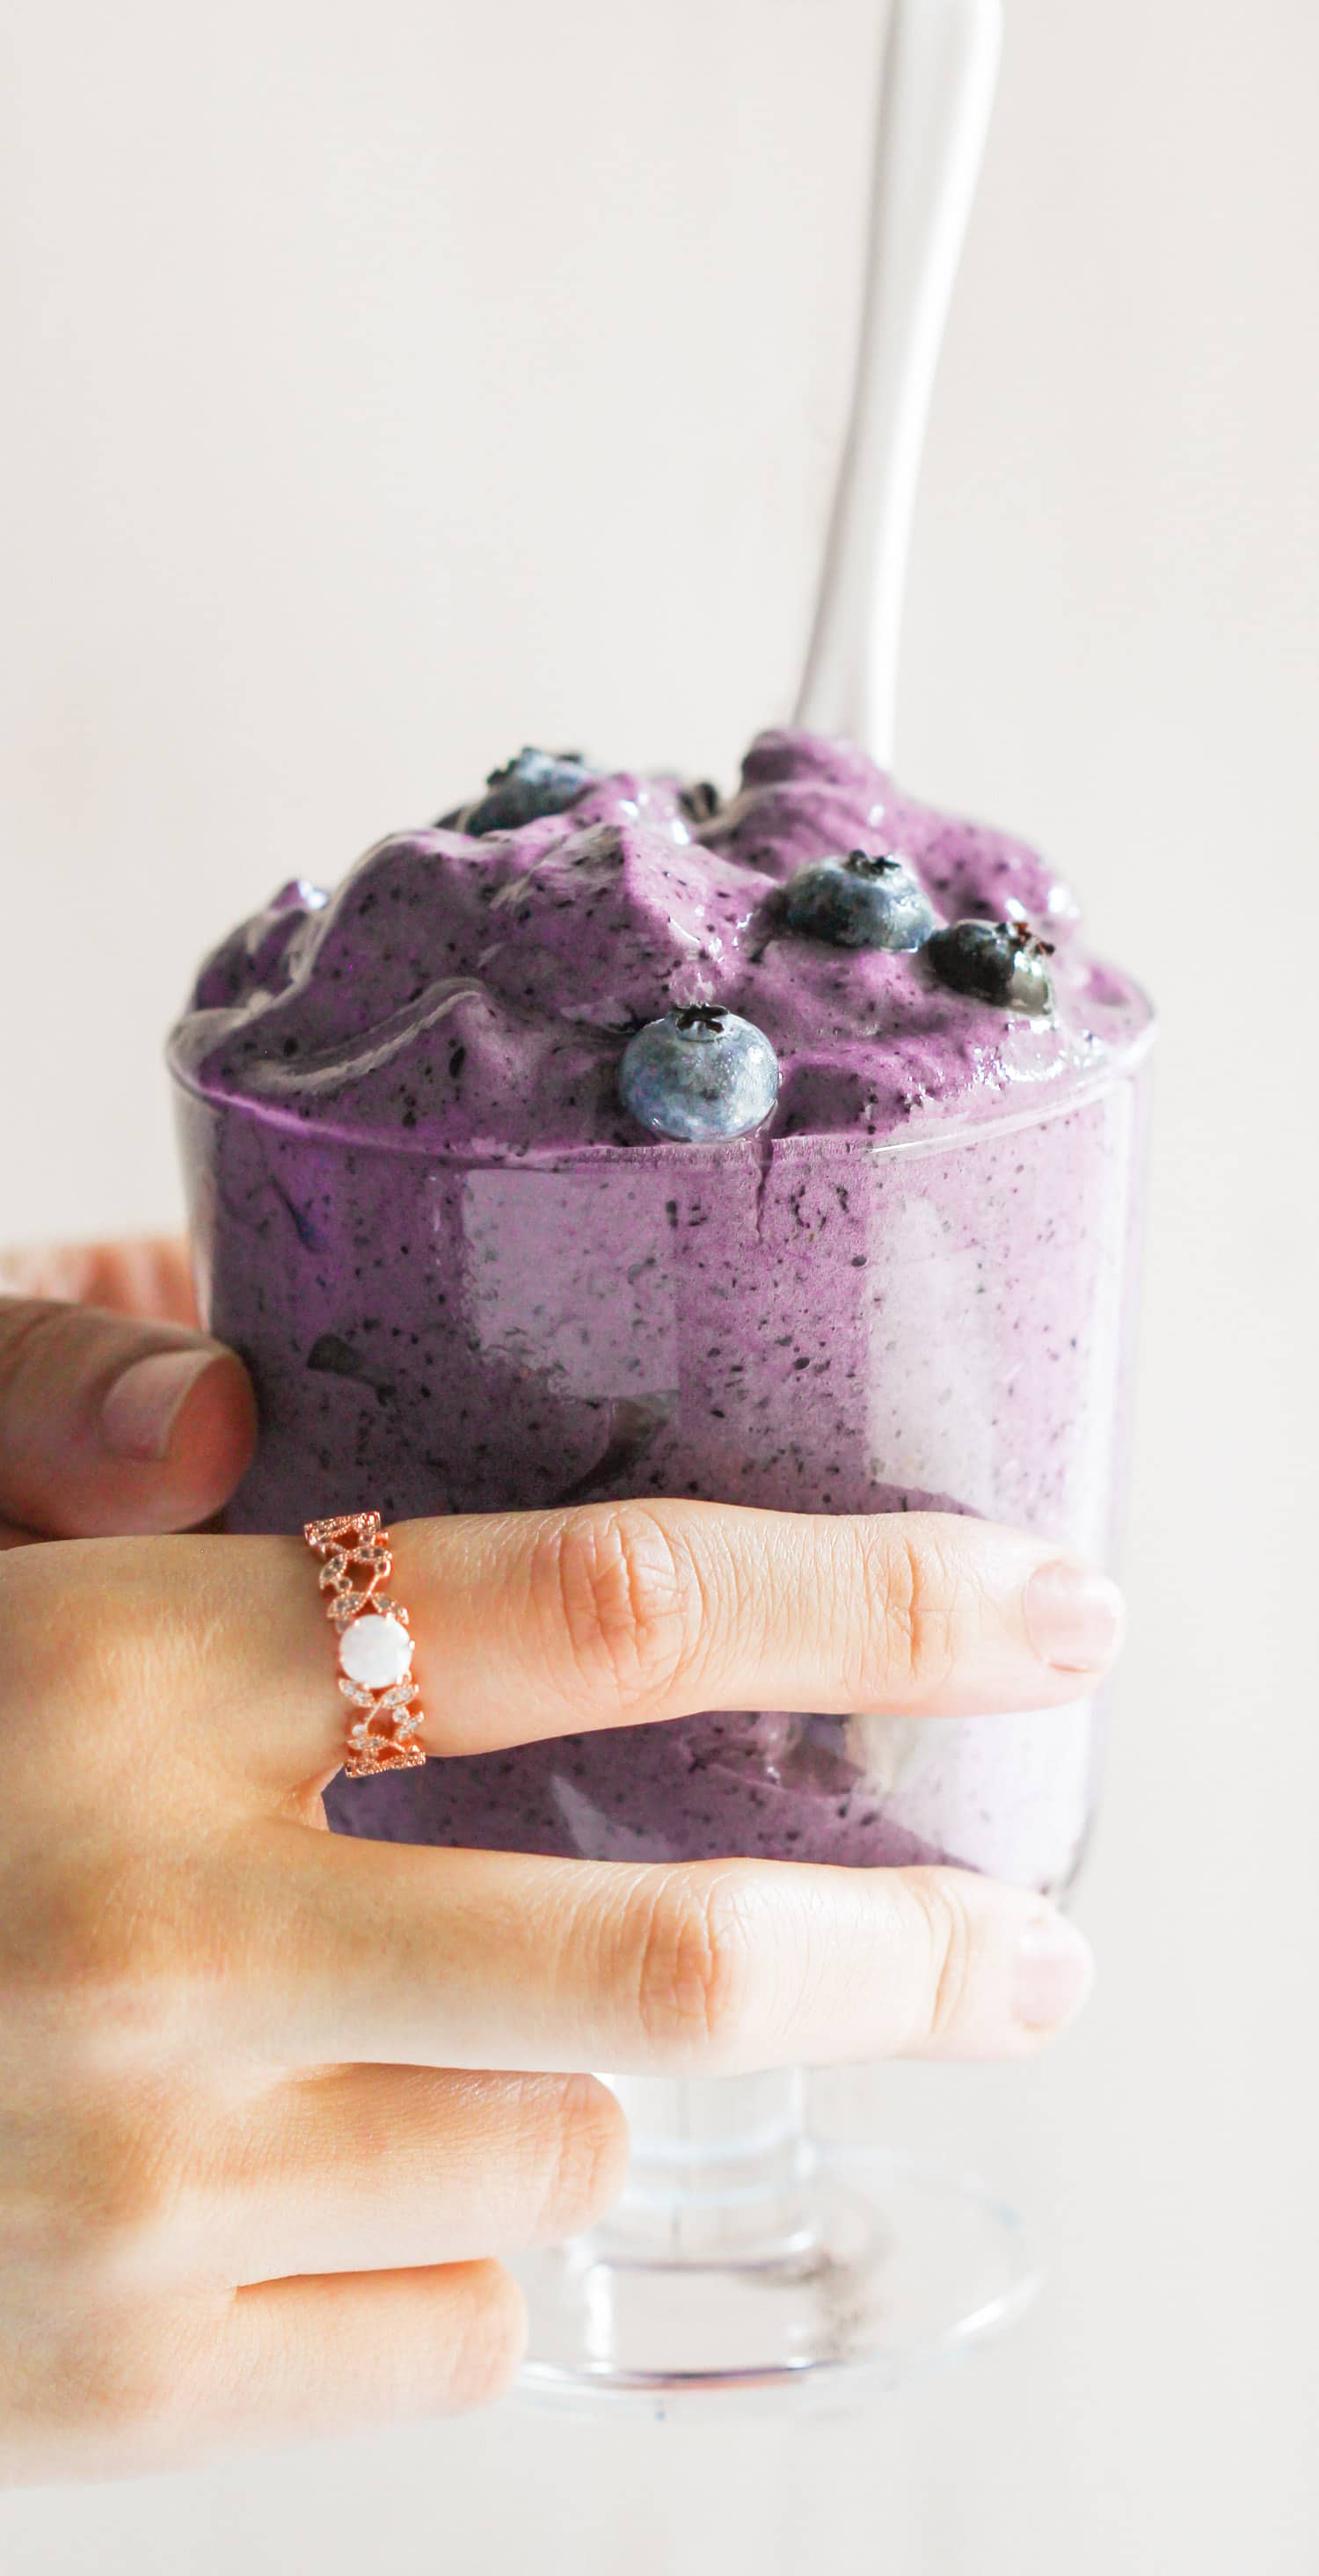 This Healthy Blueberry Protein Fluff is like a mixture between ice cream, whipped cream, and a cloud. So fluffy and voluminous with only 80 calories per serving. Plus, it's refined sugar free, low fat, high protein, and eggless! Healthy Dessert Recipes with sugar free, low calorie, low fat, low carb, high protein, gluten free, dairy free, vegan, and raw options at the Desserts With Benefits Blog (www.DessertsWithBenefits.com)